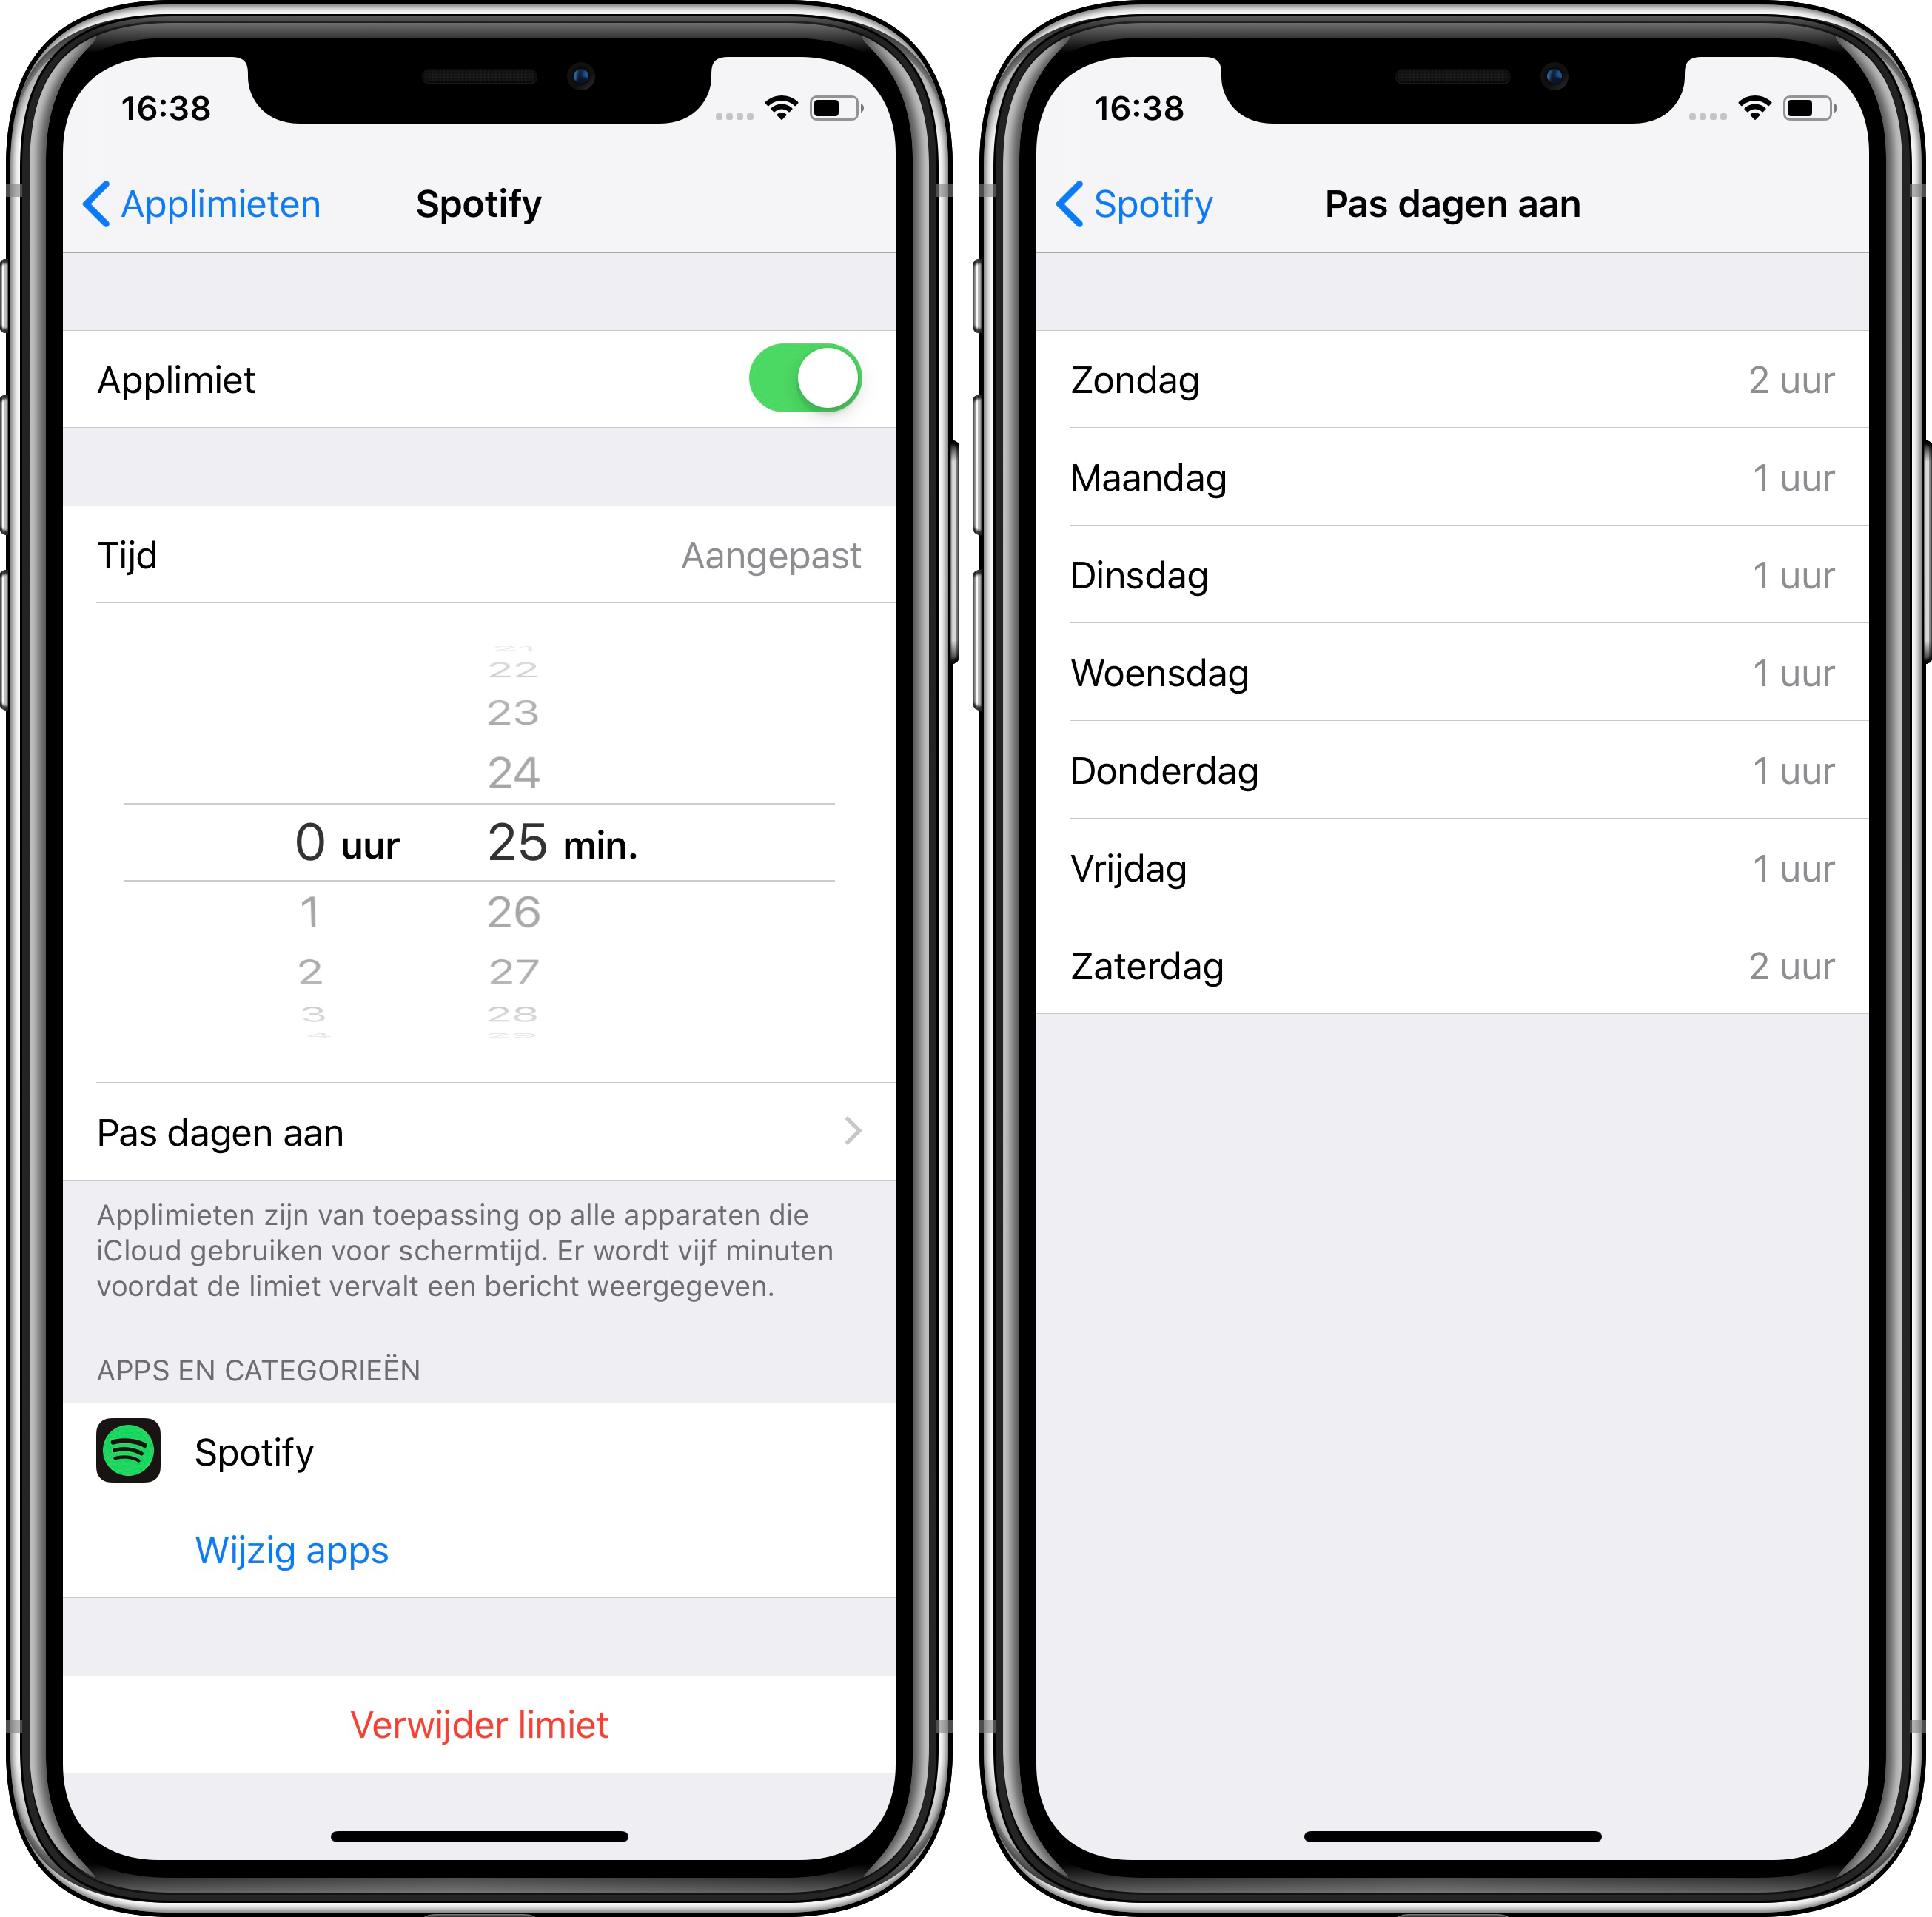 The iOS 12.2 application limits screen time